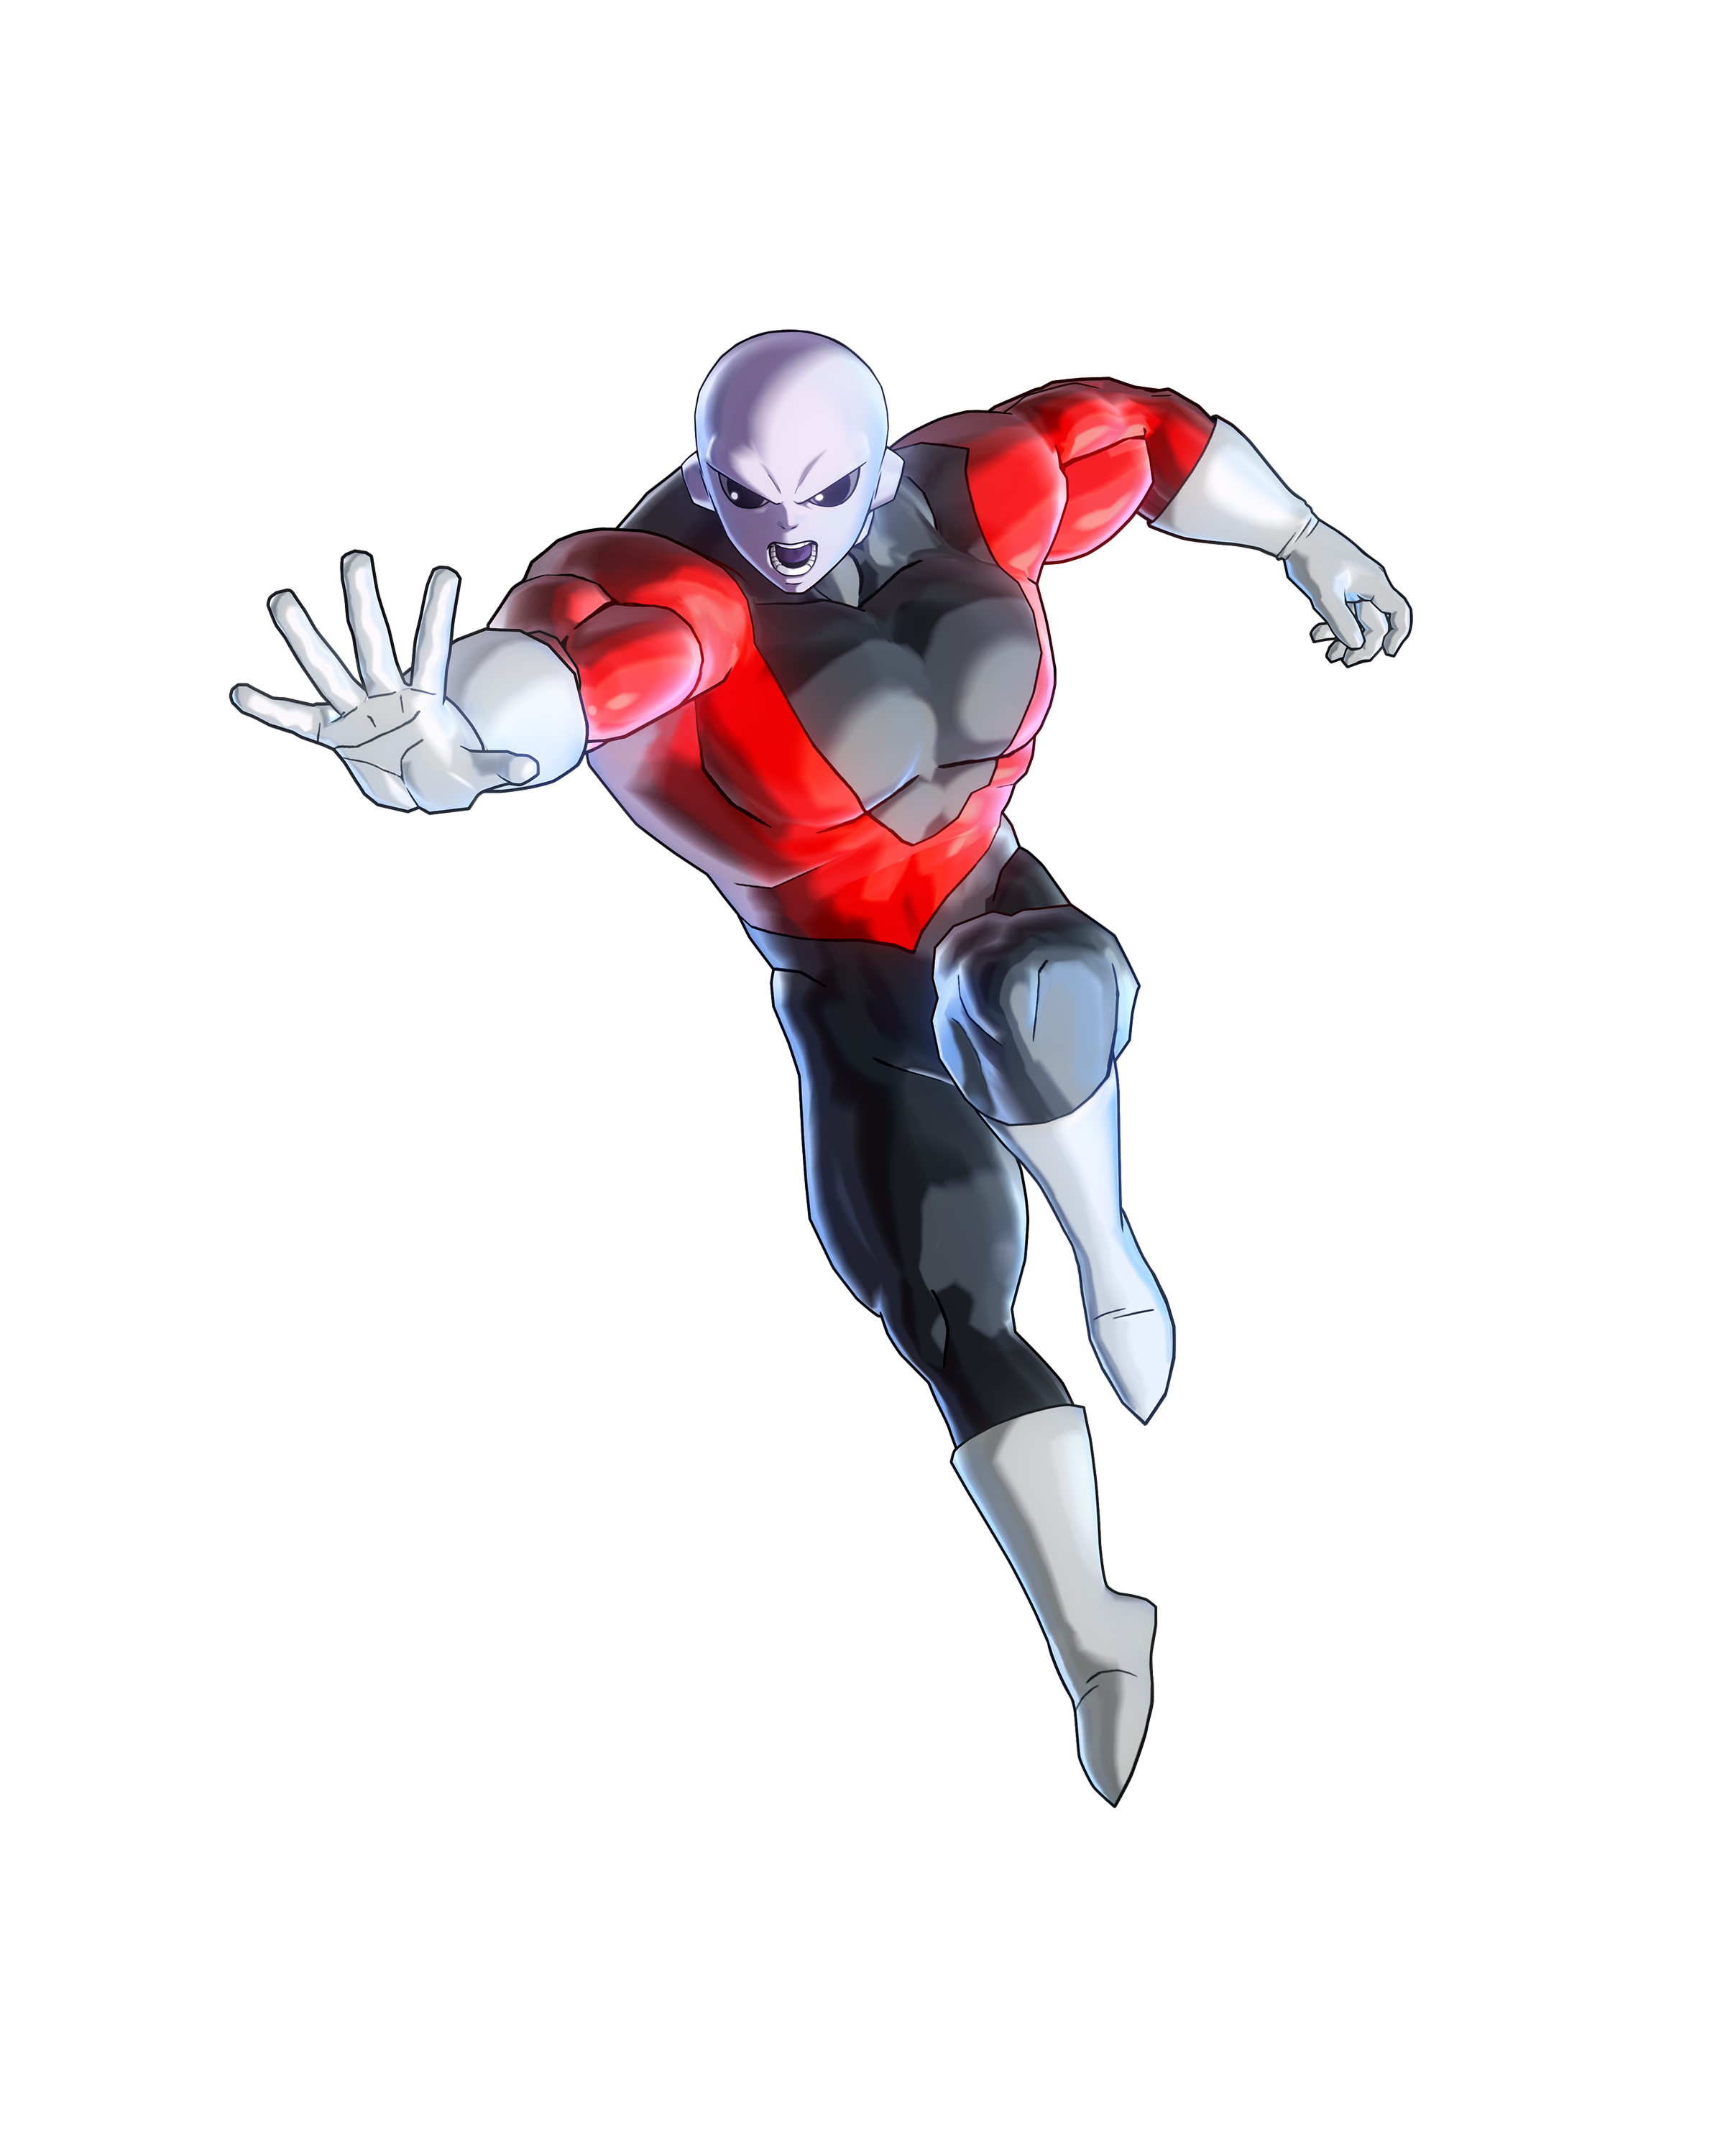 Dragon Ball Xenoverse 2 DLC Jiren